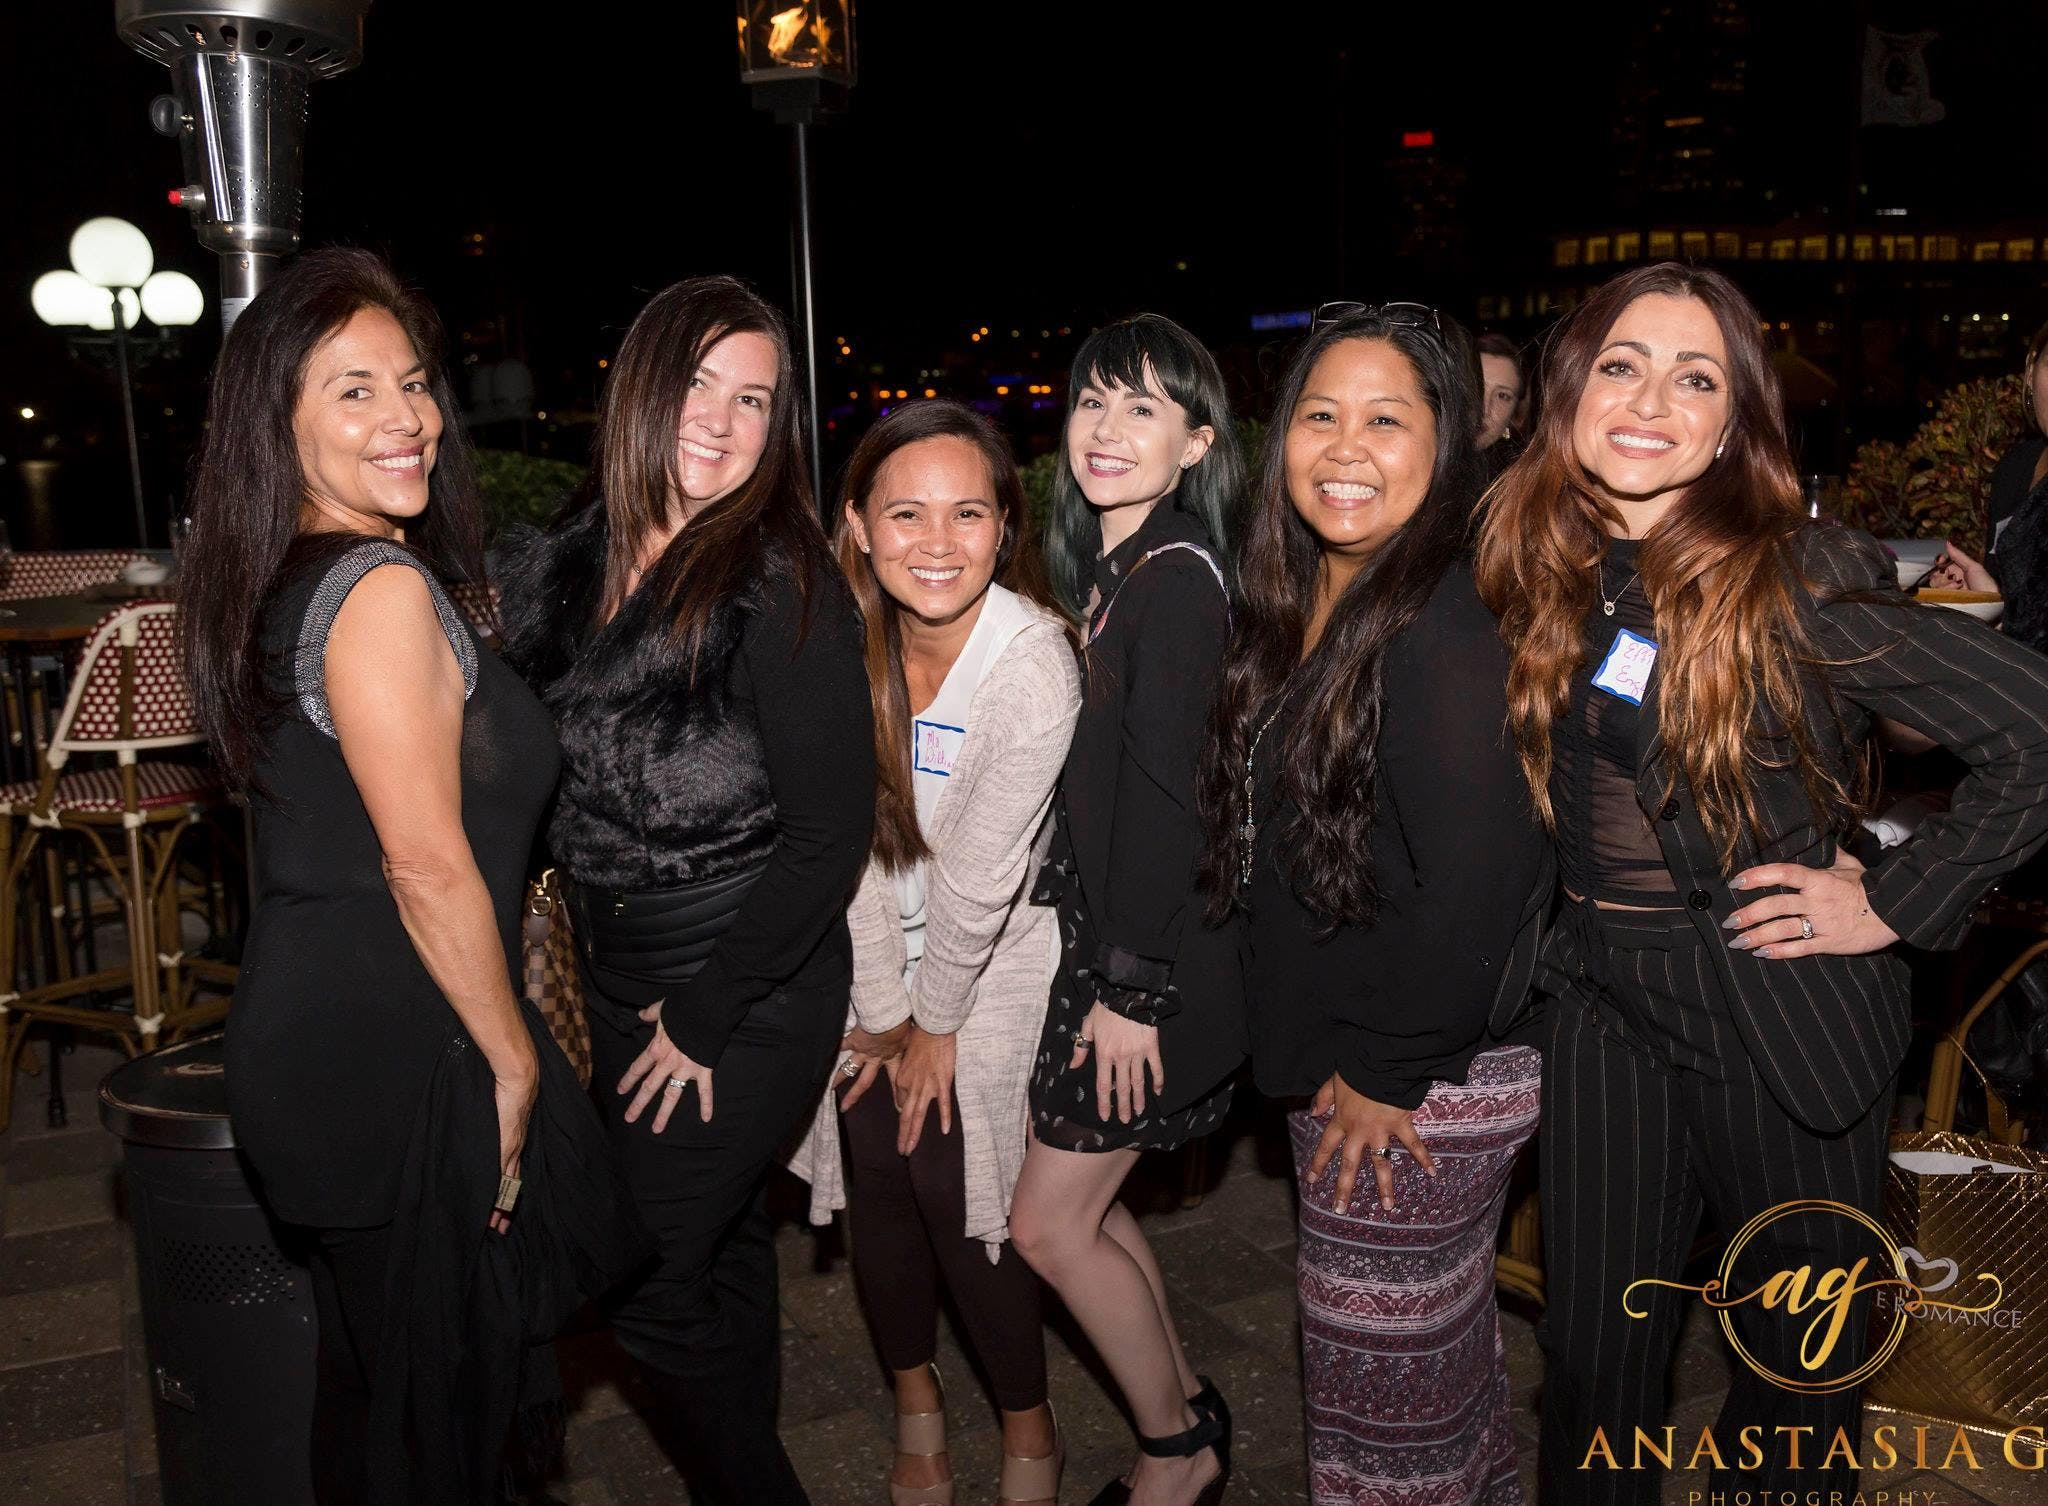 Summer Bash - Girls Night Out at American Social